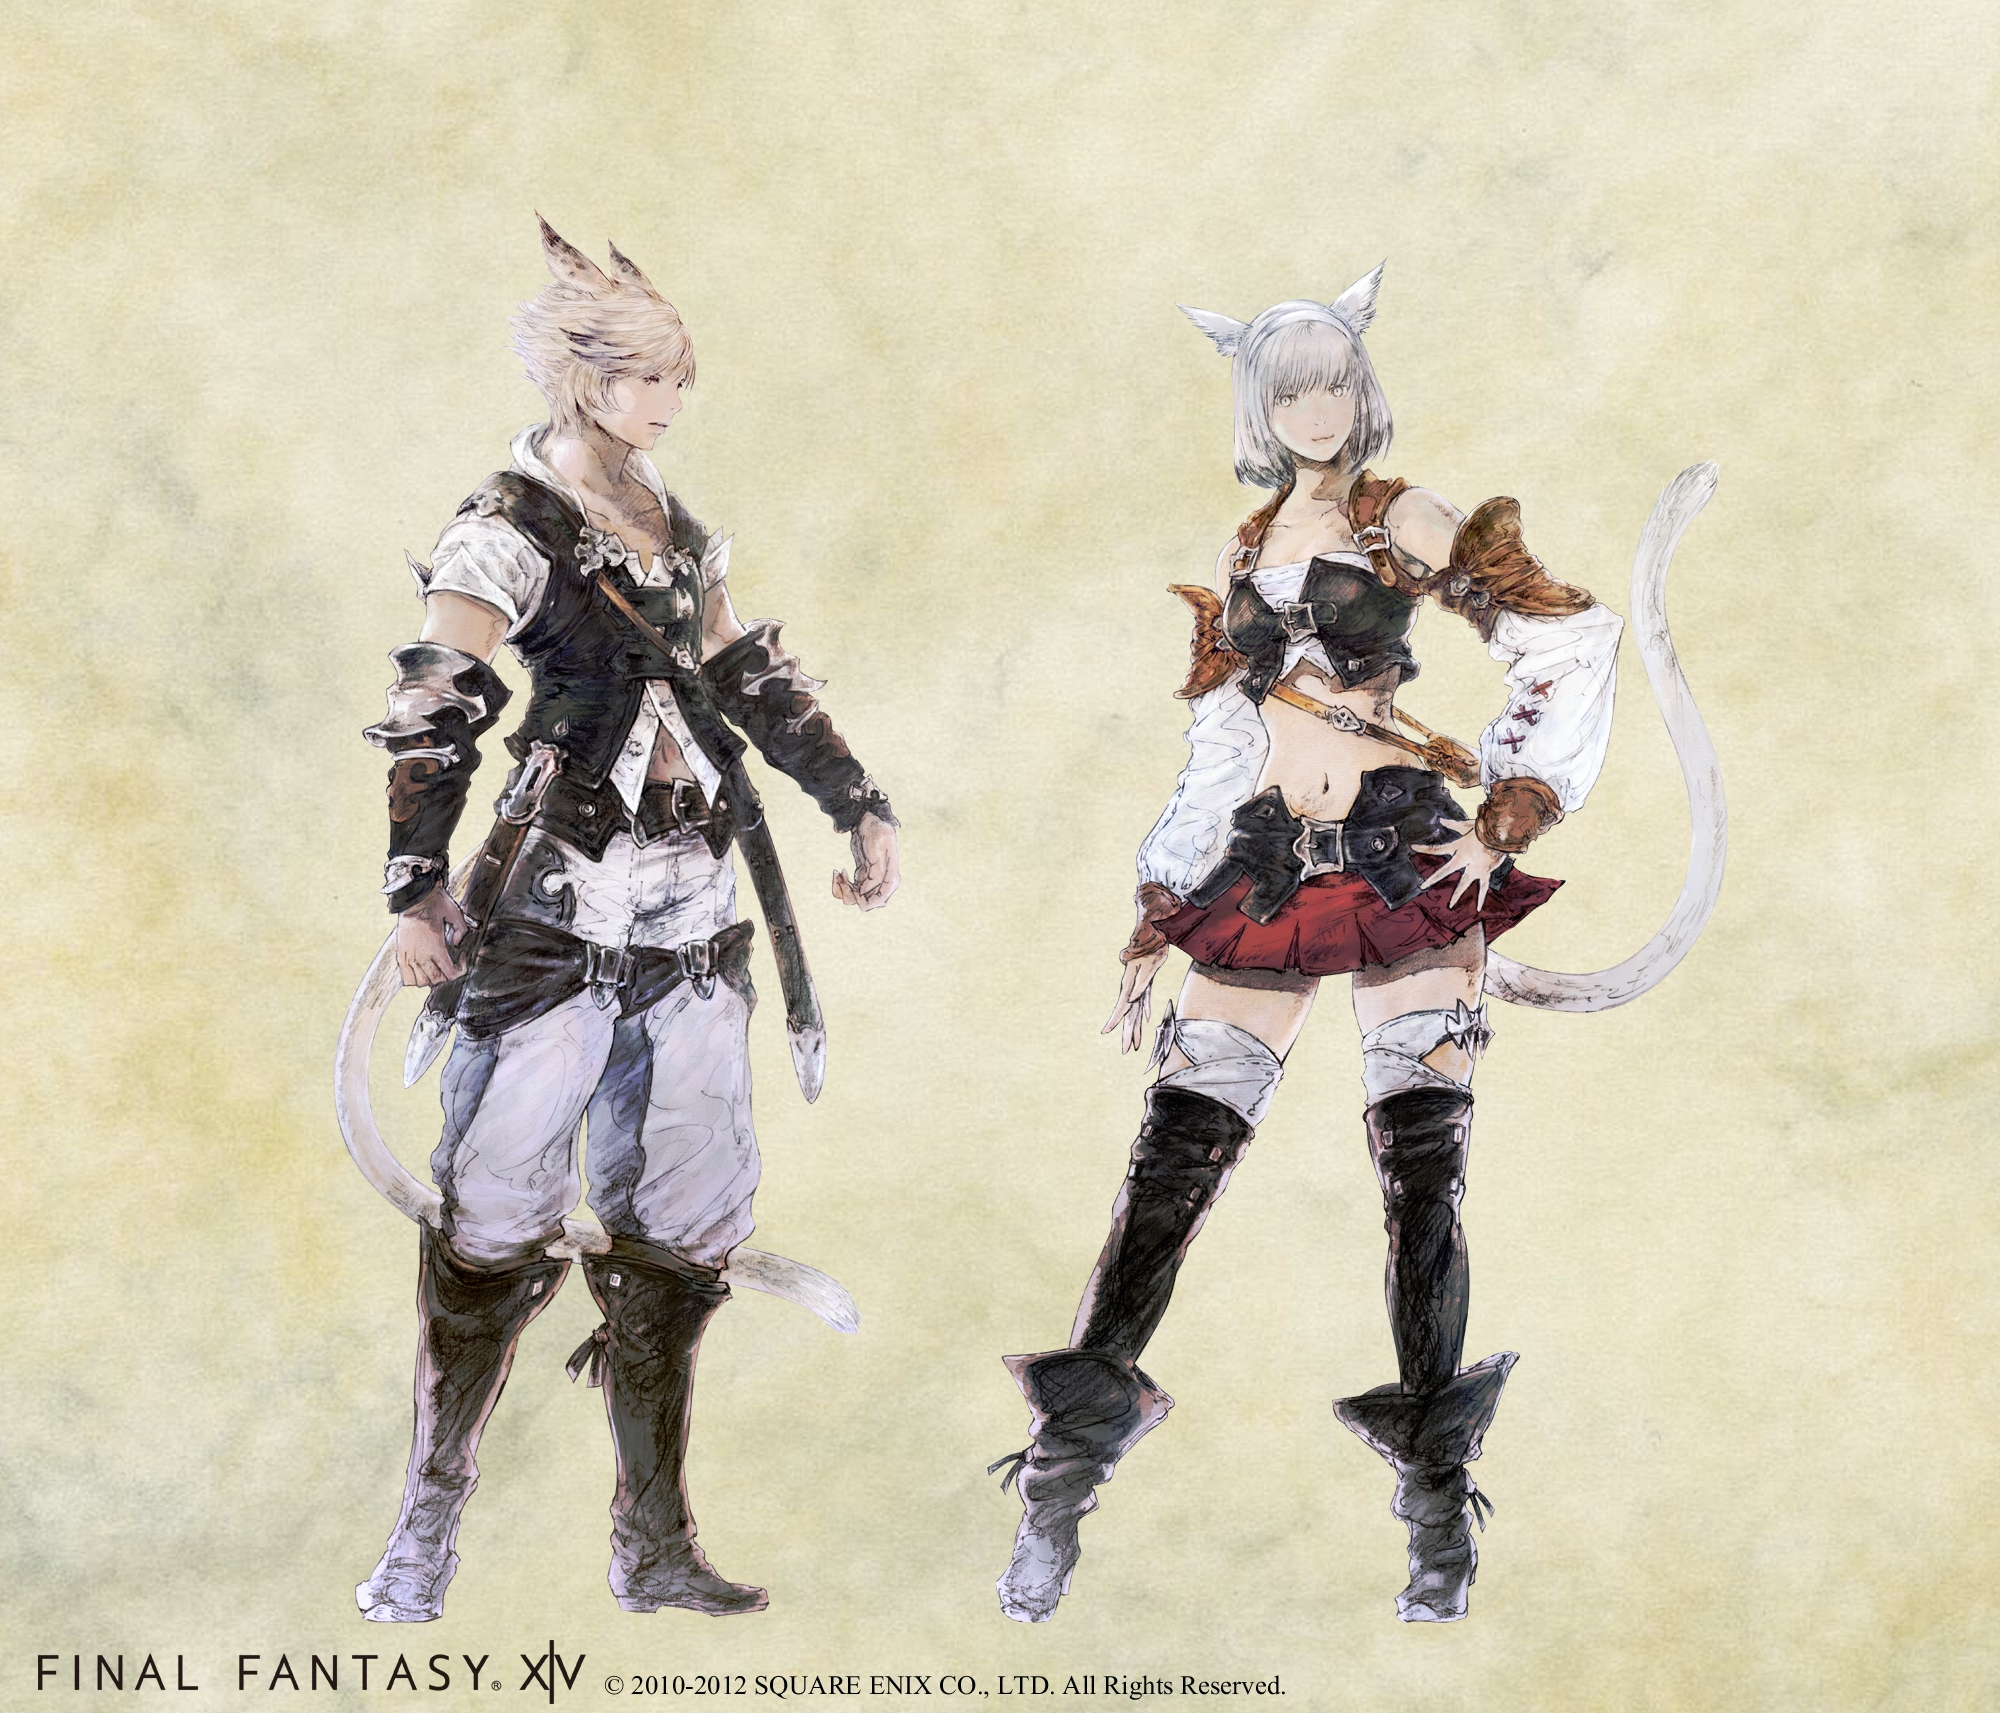 Final Fantasy XIV 2 0 Character Classes Introduced and New